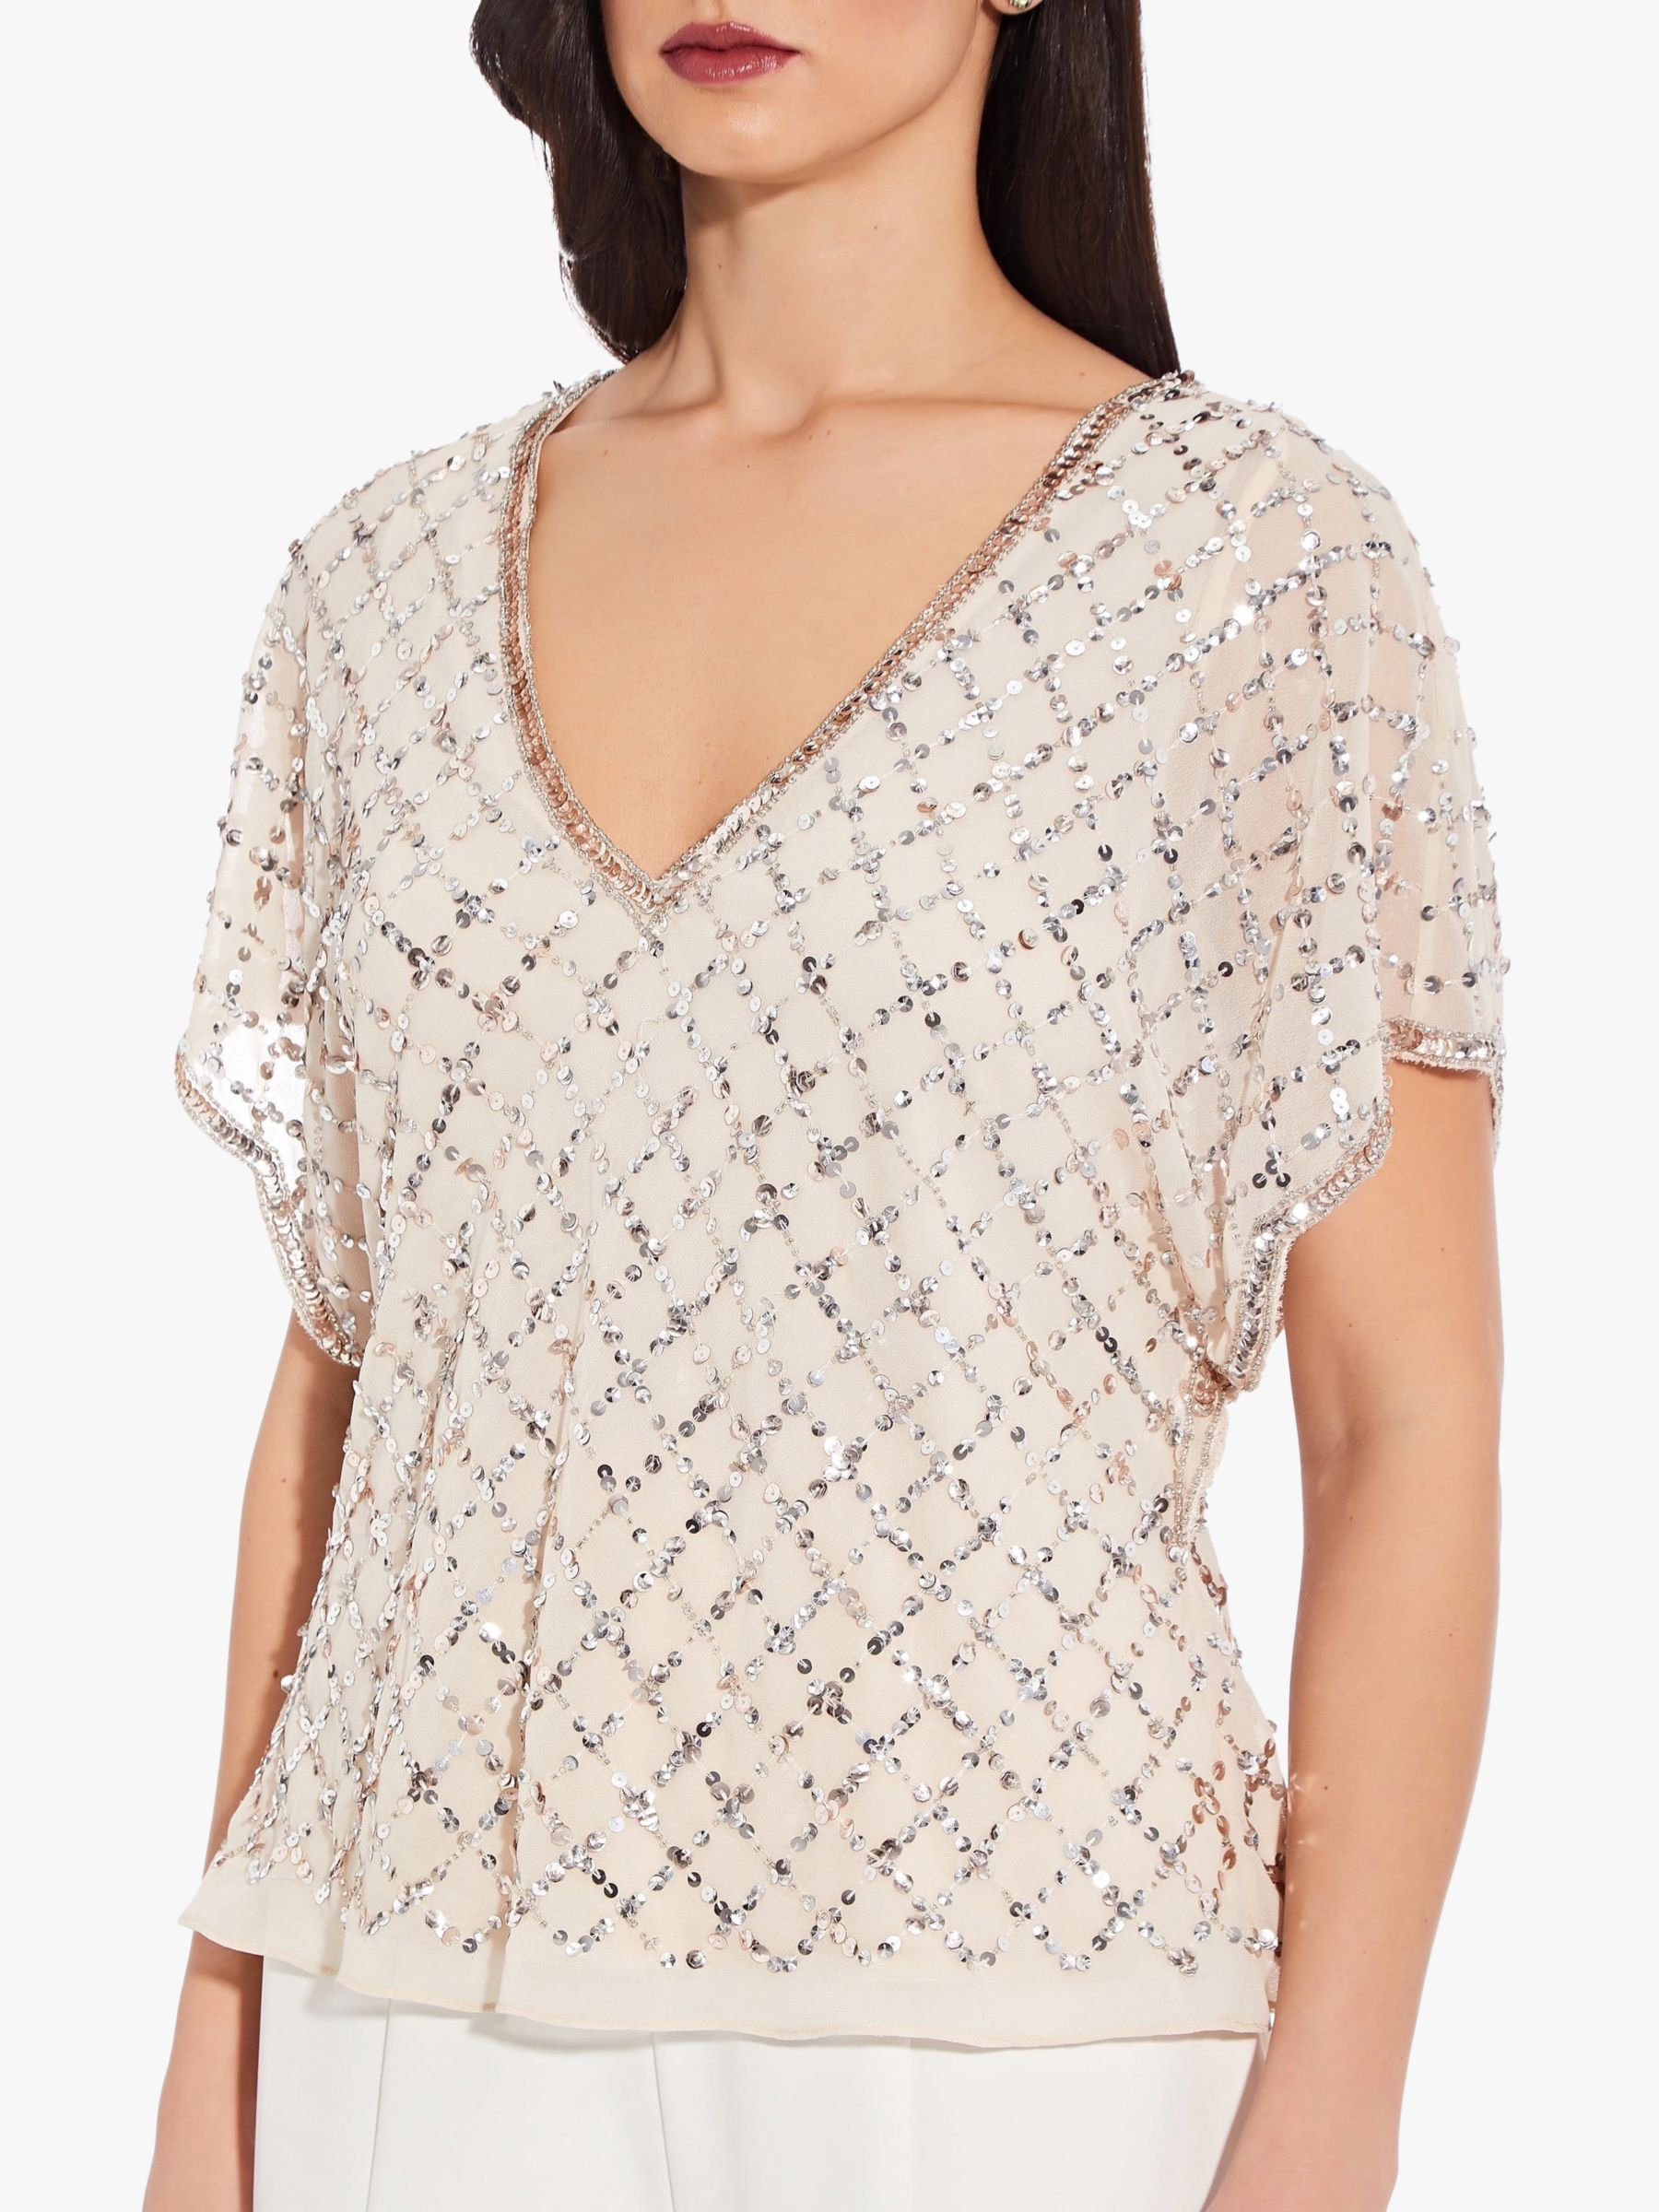 Adrianna Papell Adrianna Papell Beaded Flutter Sleeve Top, Champagne